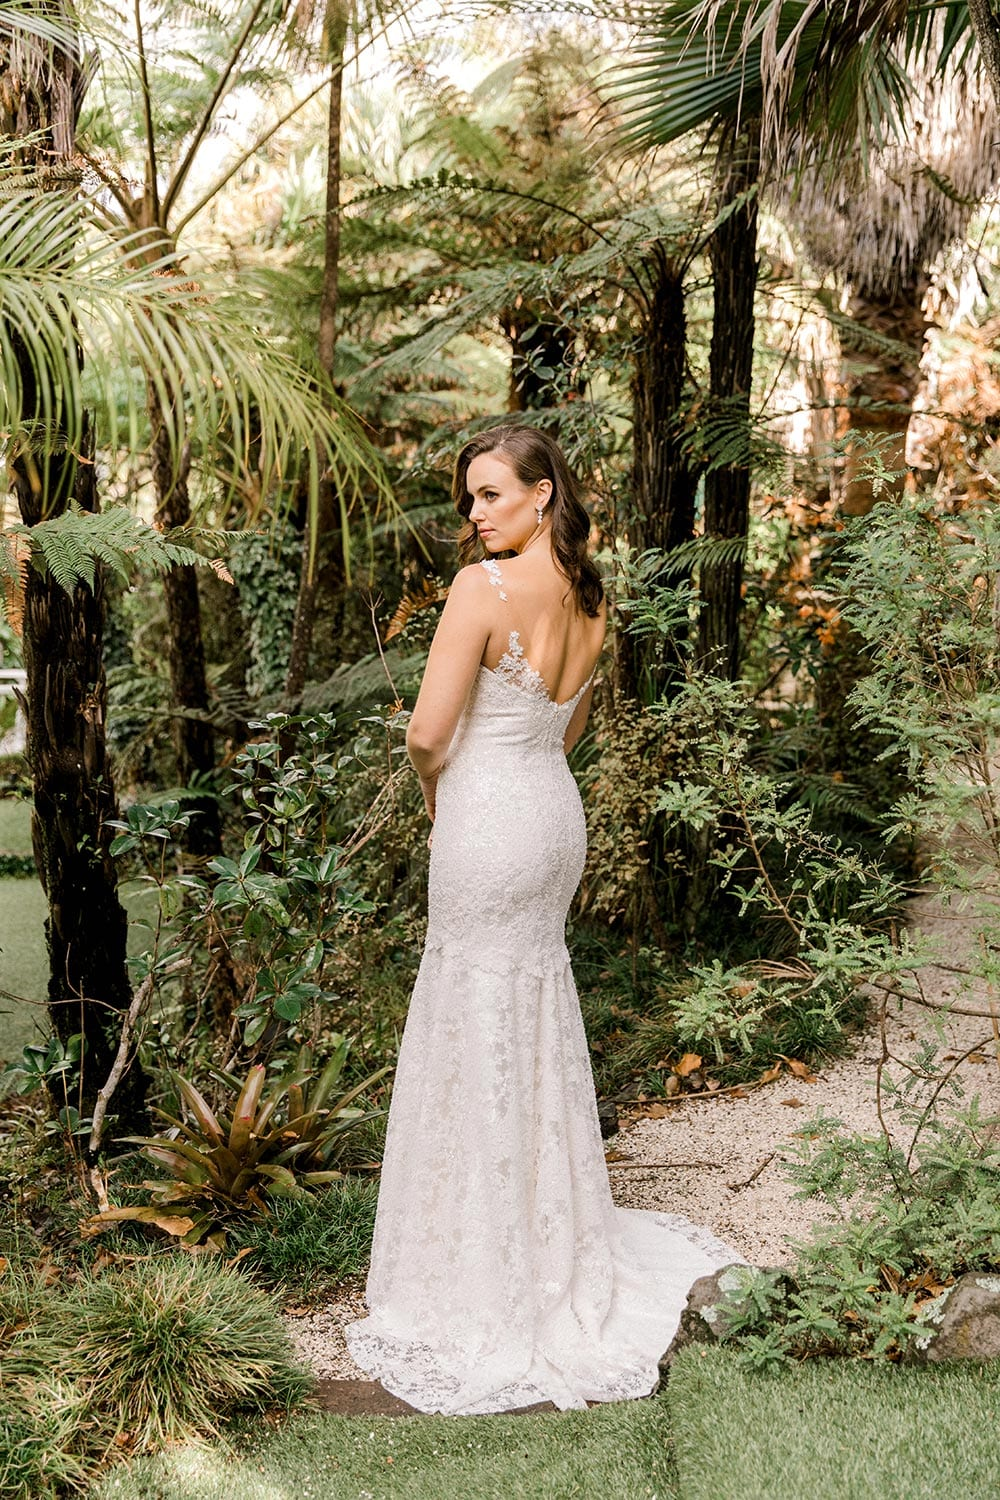 Dakota Wedding Dress from Vinka Design. This full-lace wedding dress is form fitting, sculpting the body beautifully. Delicate beaded lace flowers are hand-appliqued up the sheer nude tulle straps on both the front & back. Full length with model turned away showing detail on back of dress, photographed at Tui Hills by Emmaline Photography.